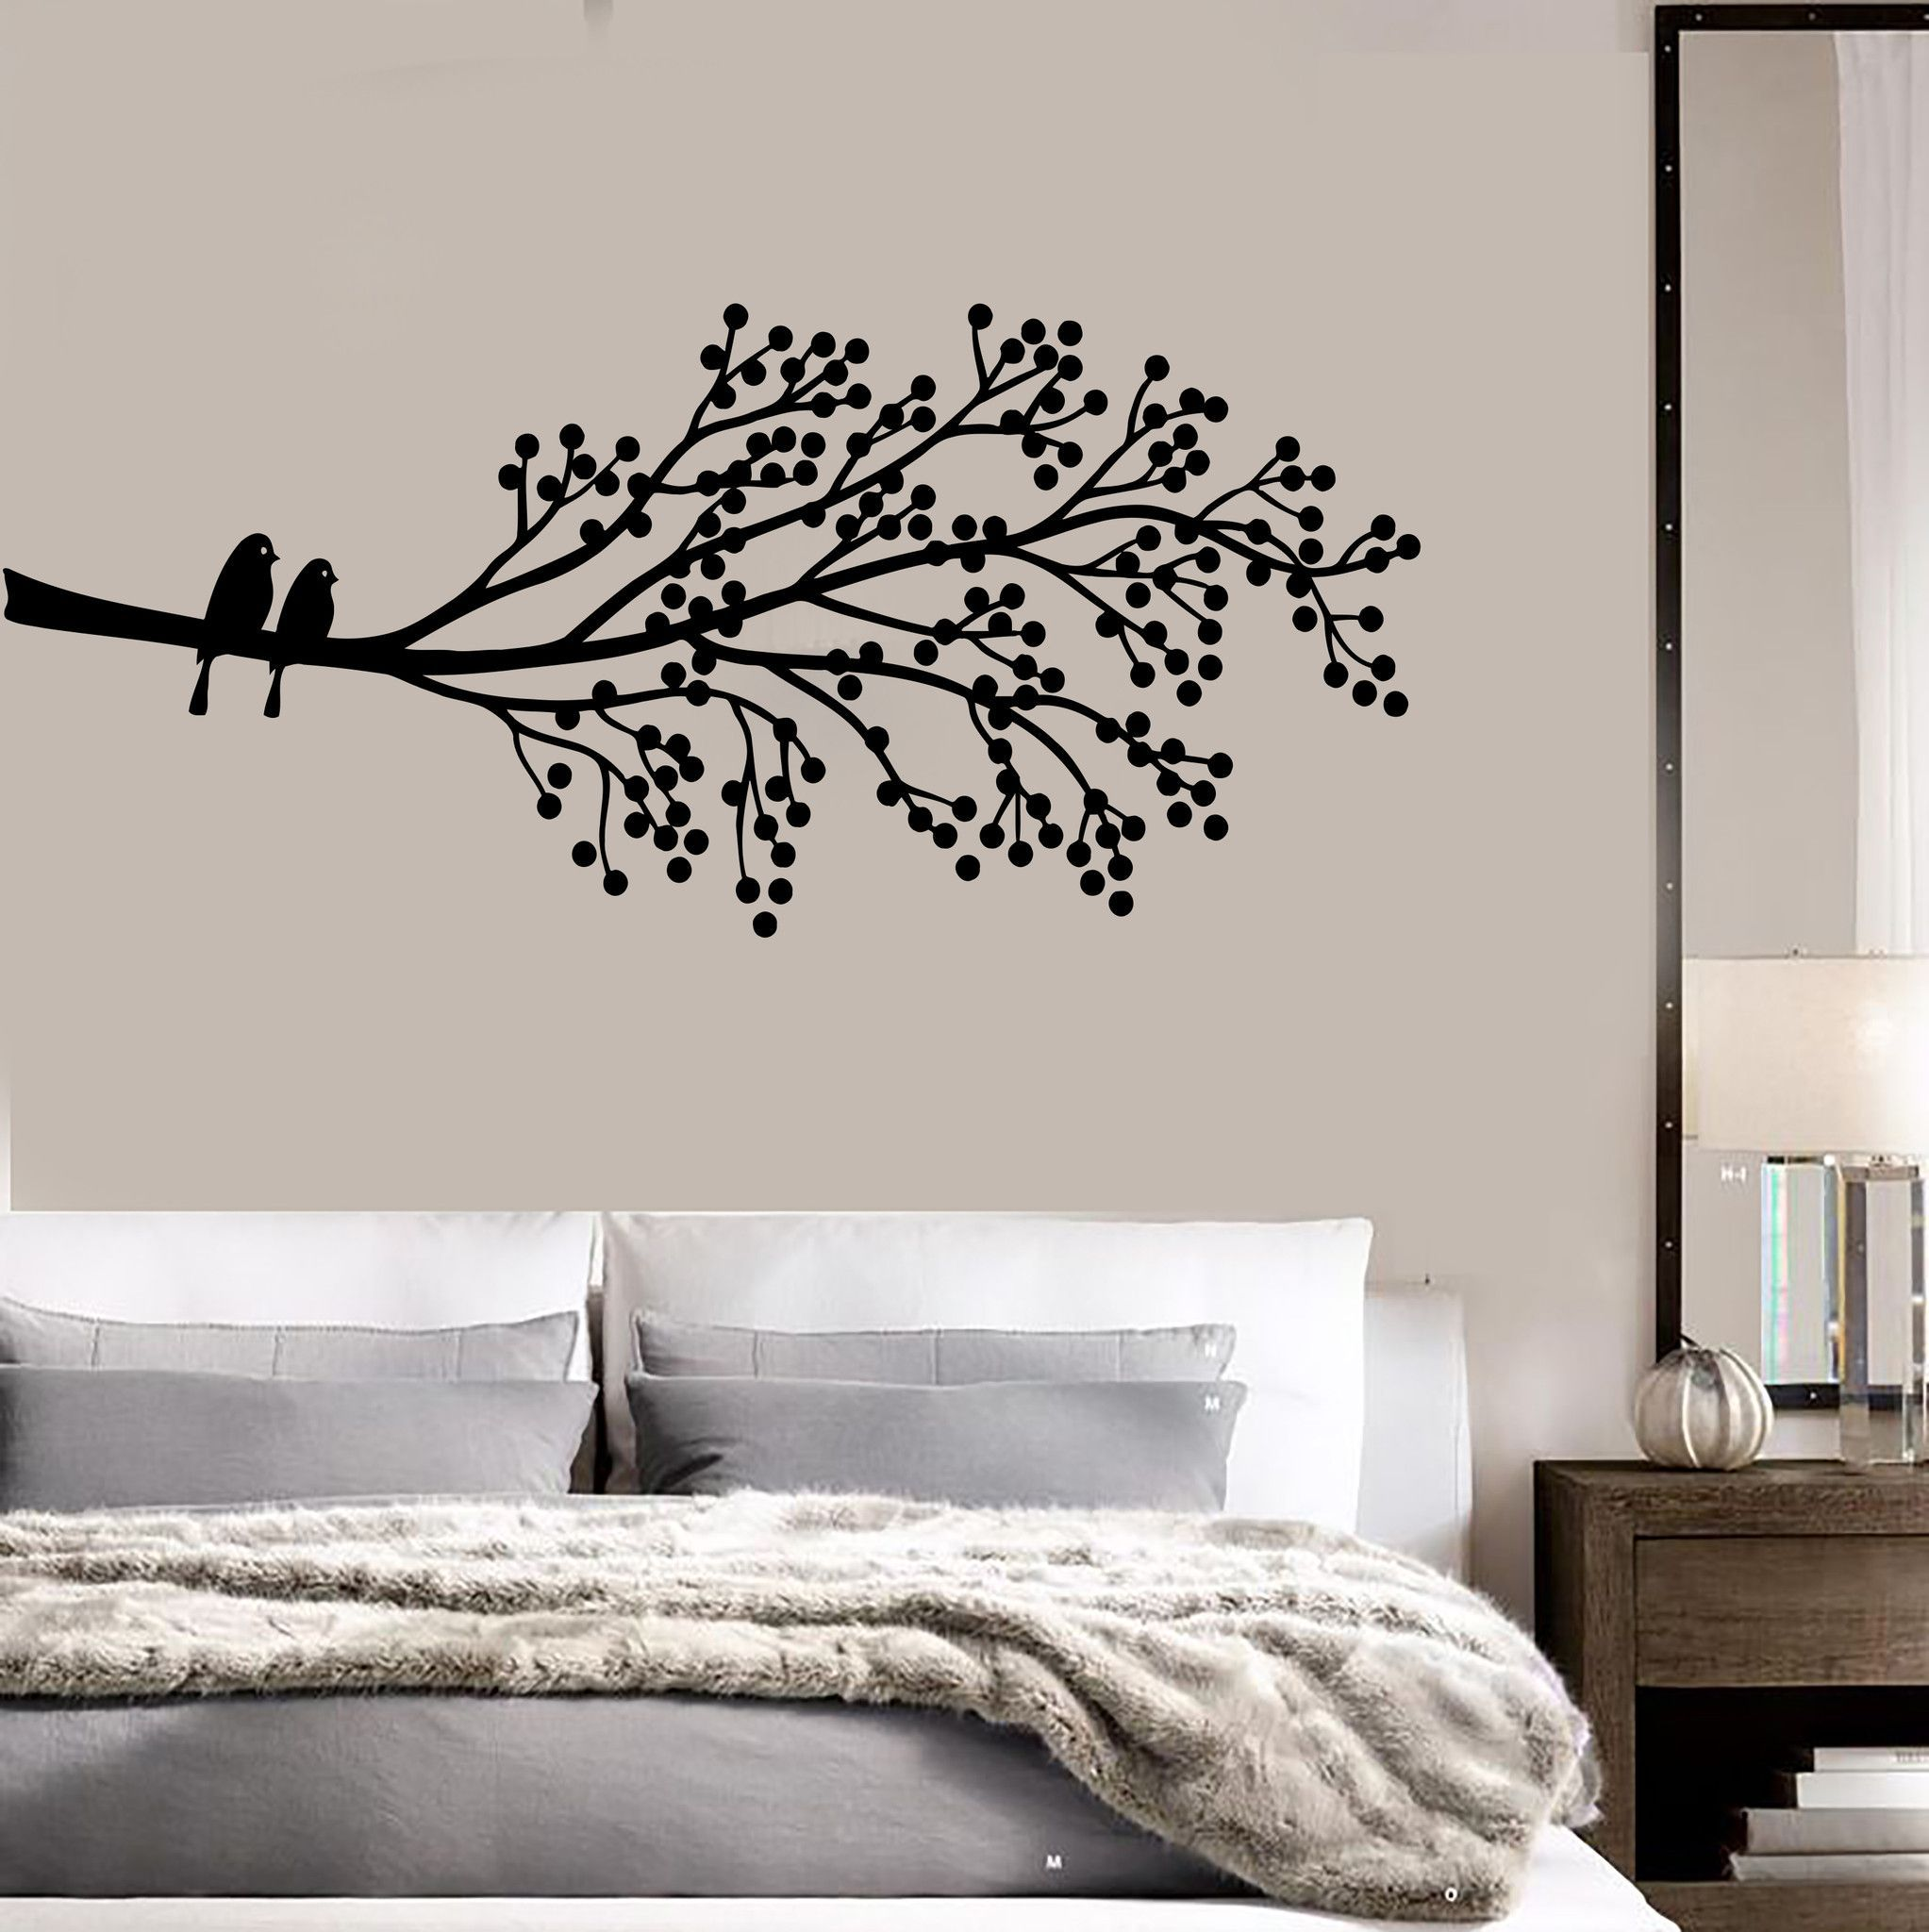 Vinyl wall decal tree branch birds nature house interior bedroom